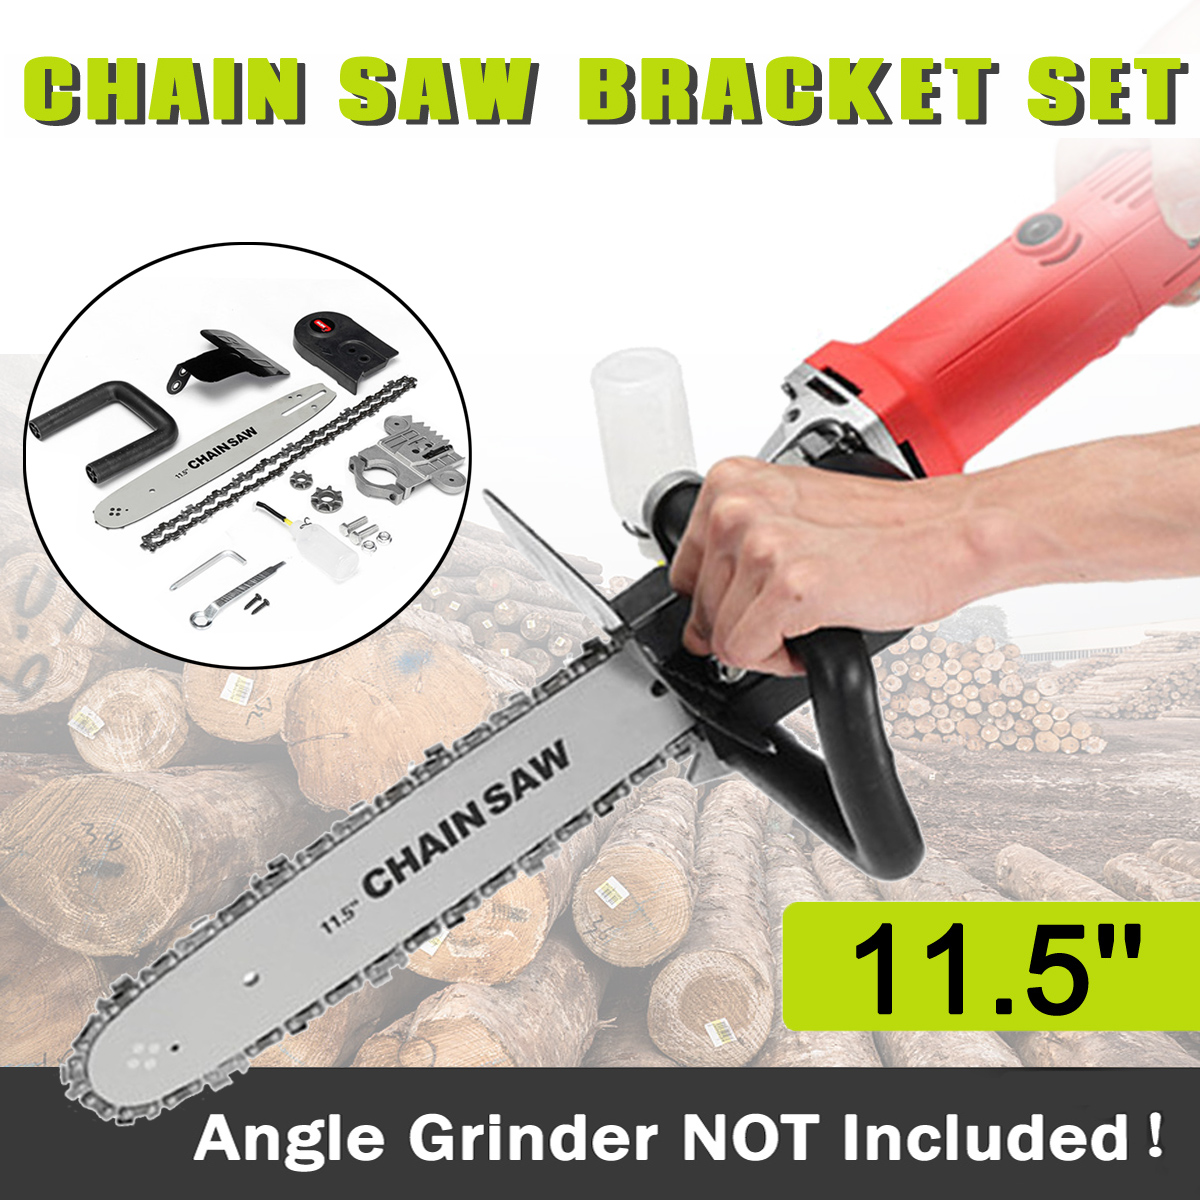 Electric saws Upgrade 11.5 Inch Chainsaw Bracket Changed 100 125 150 M10/M14/M16 Angle Grinder Into Chain Saw Woodworking Tool